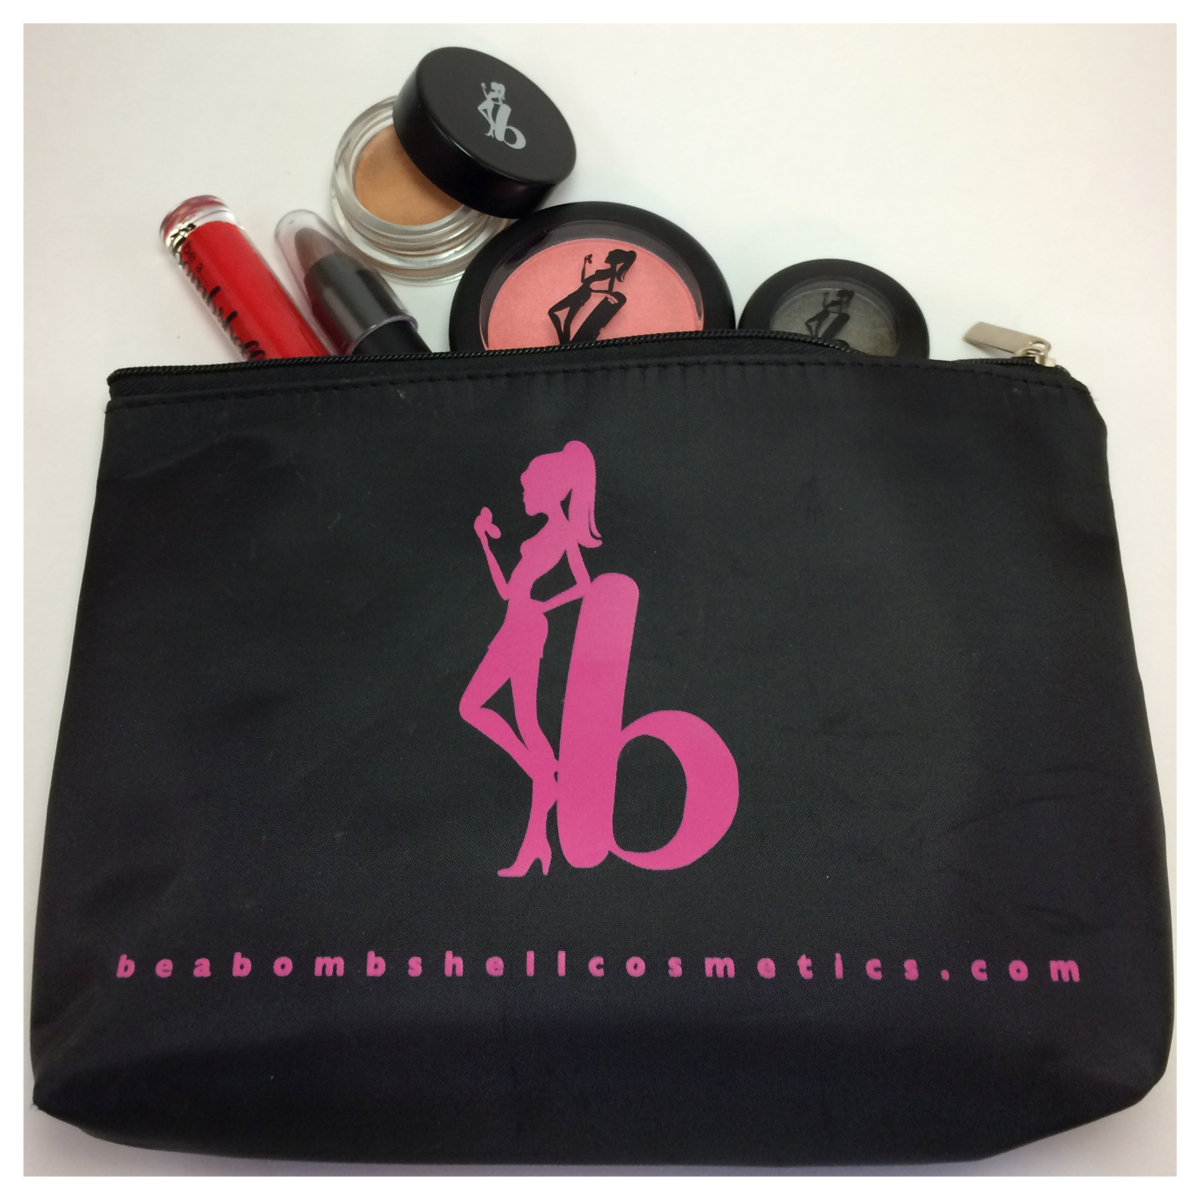 Be A Bombshell Cosmetics